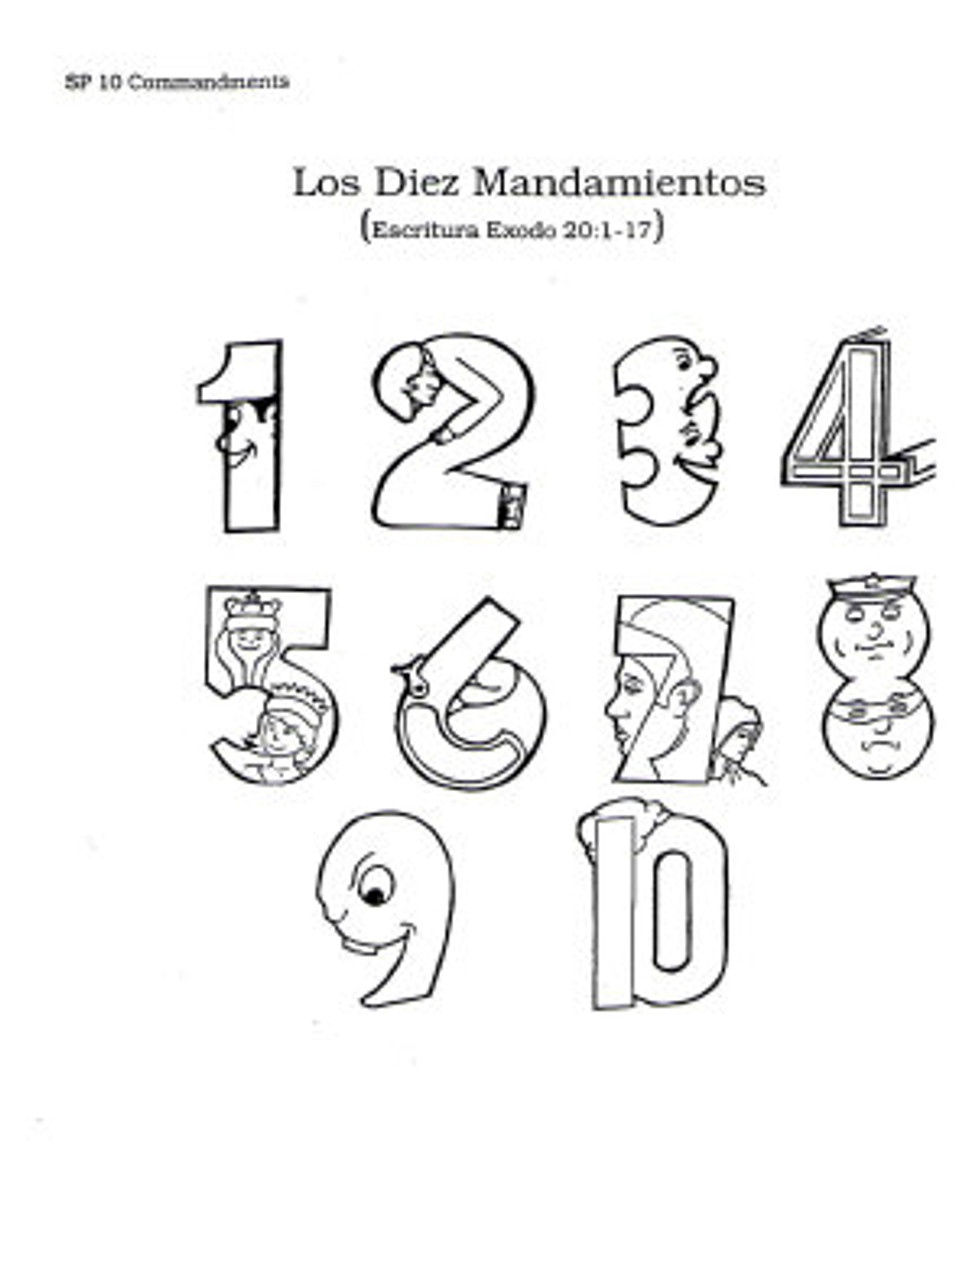 Los 10 Mandamientos (Ten Commandments)